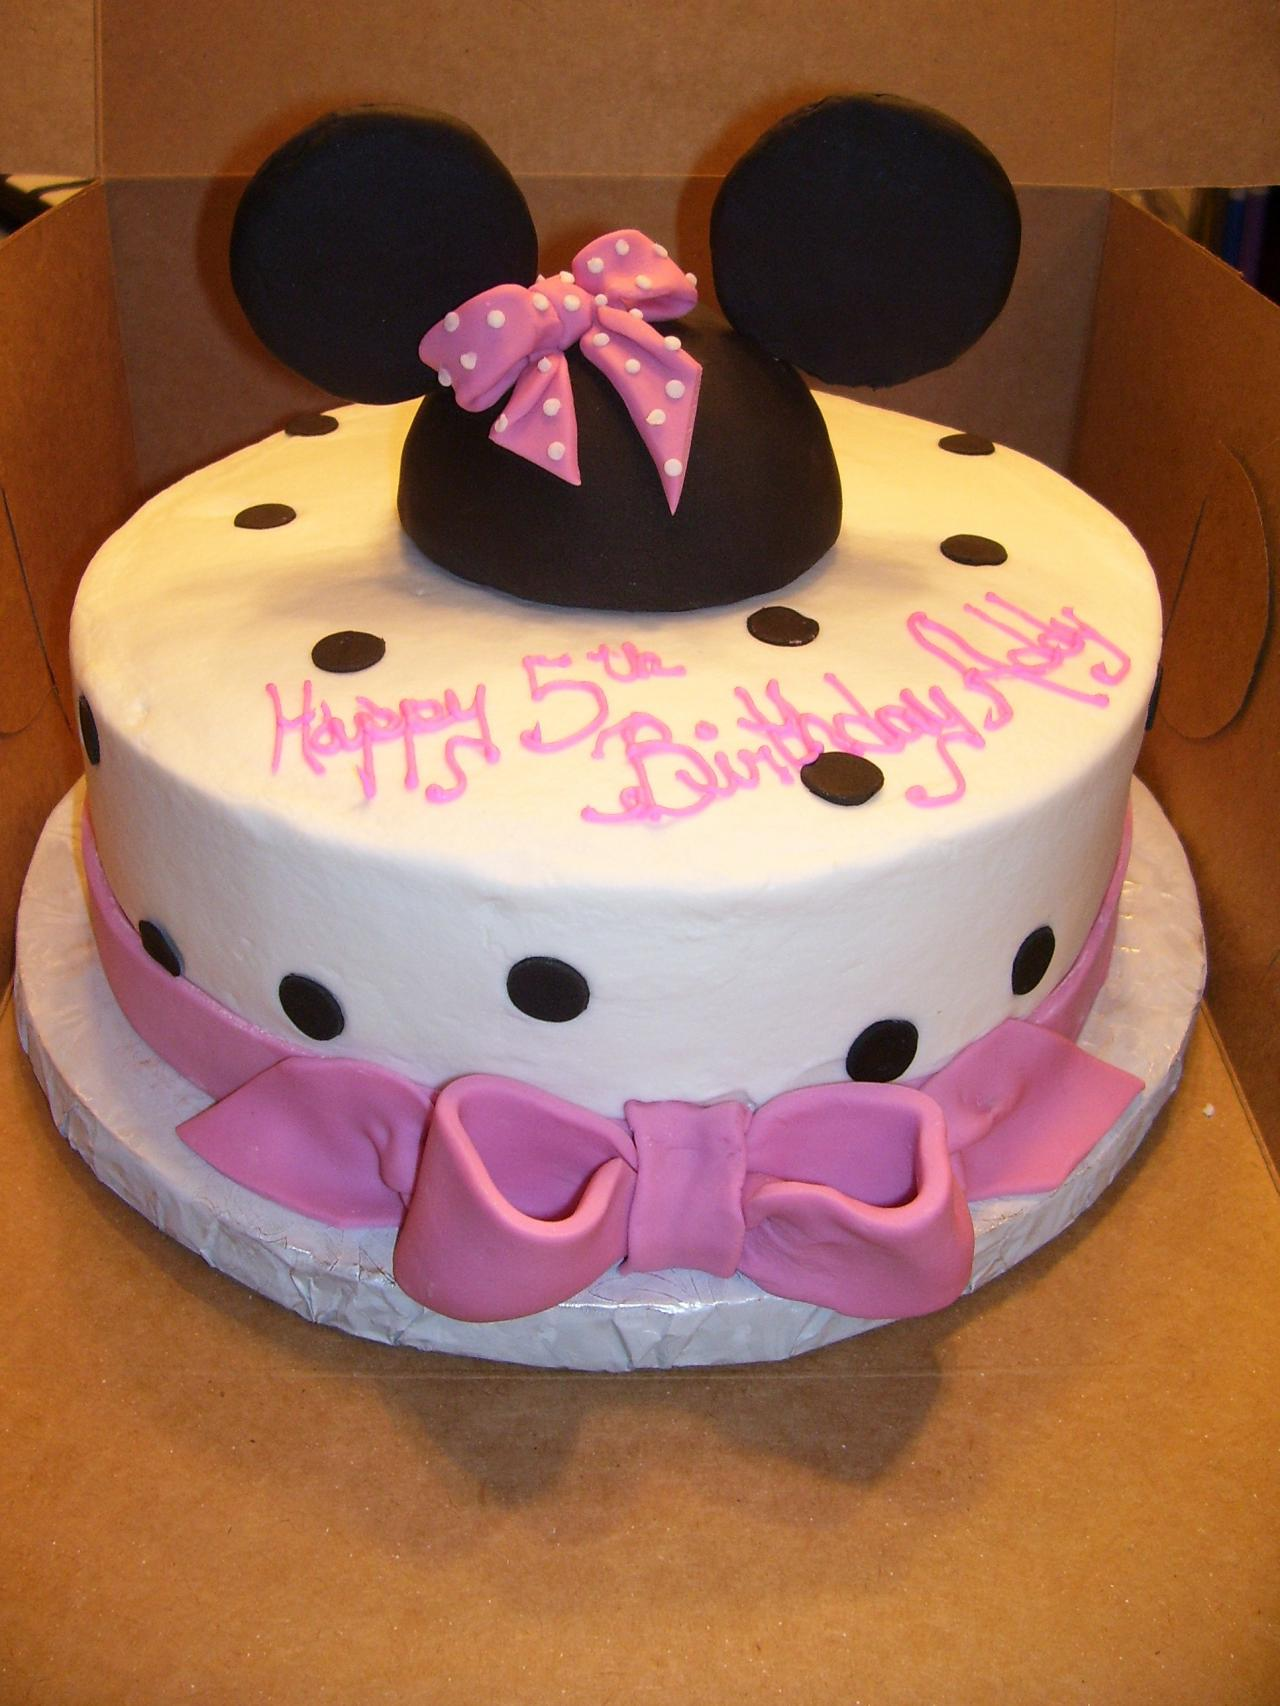 Cake Designs Website : B&B Cake Designs - Cake Gallery 2